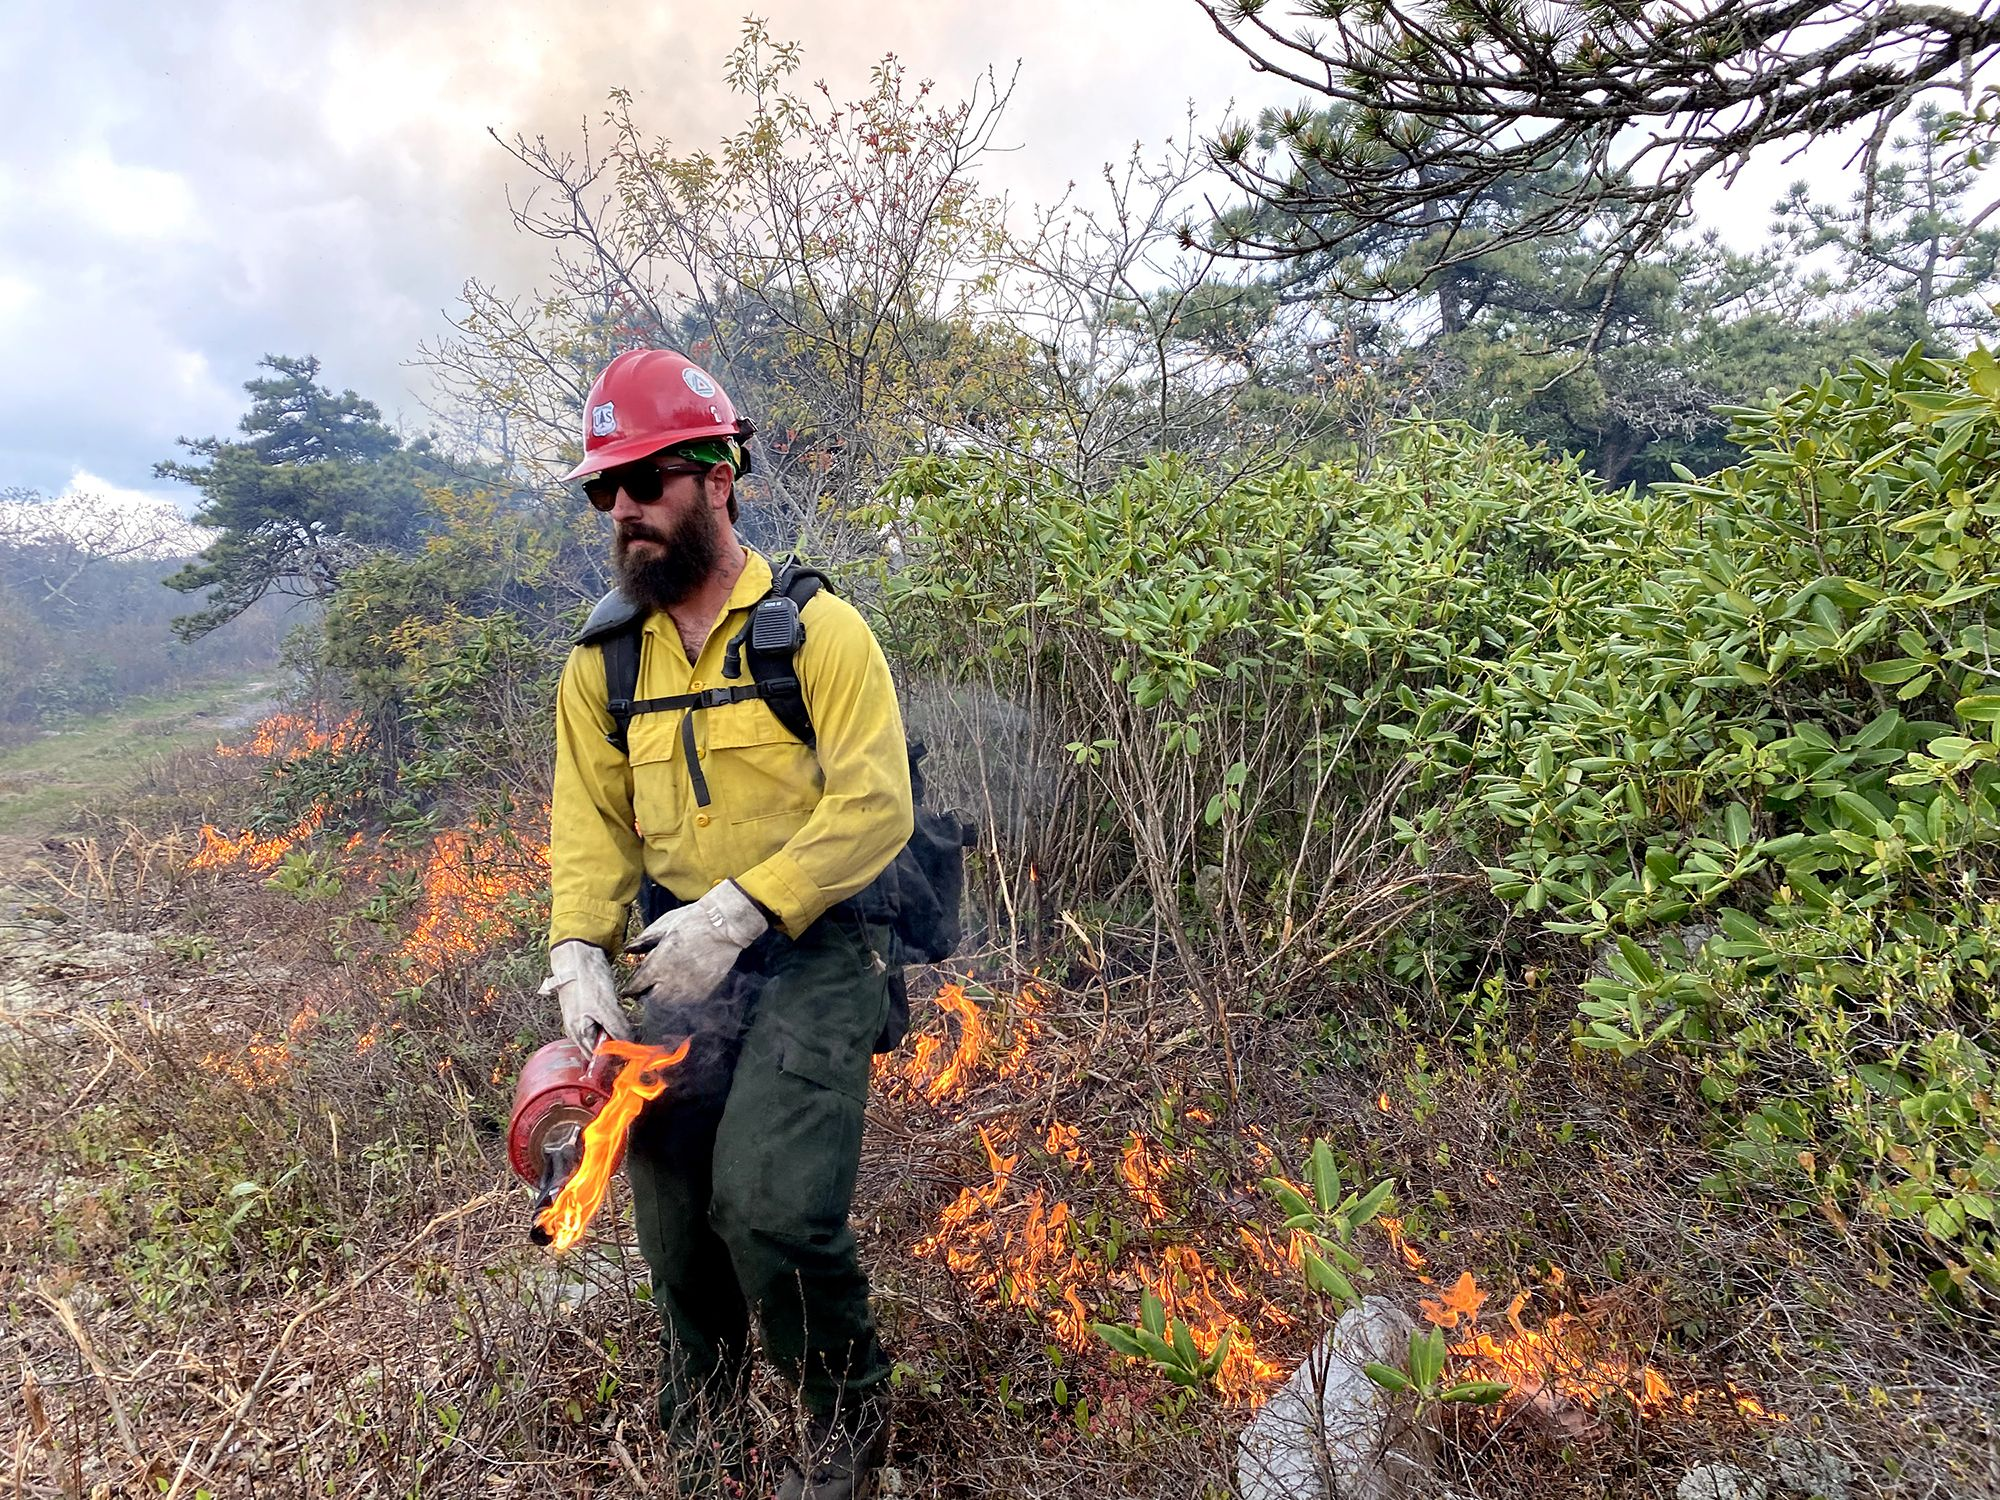 A man with a bushy brown beard holds a red drip torch canister. Behind him a line of fire burns into a stand of tall shrubs during a controlled burn.